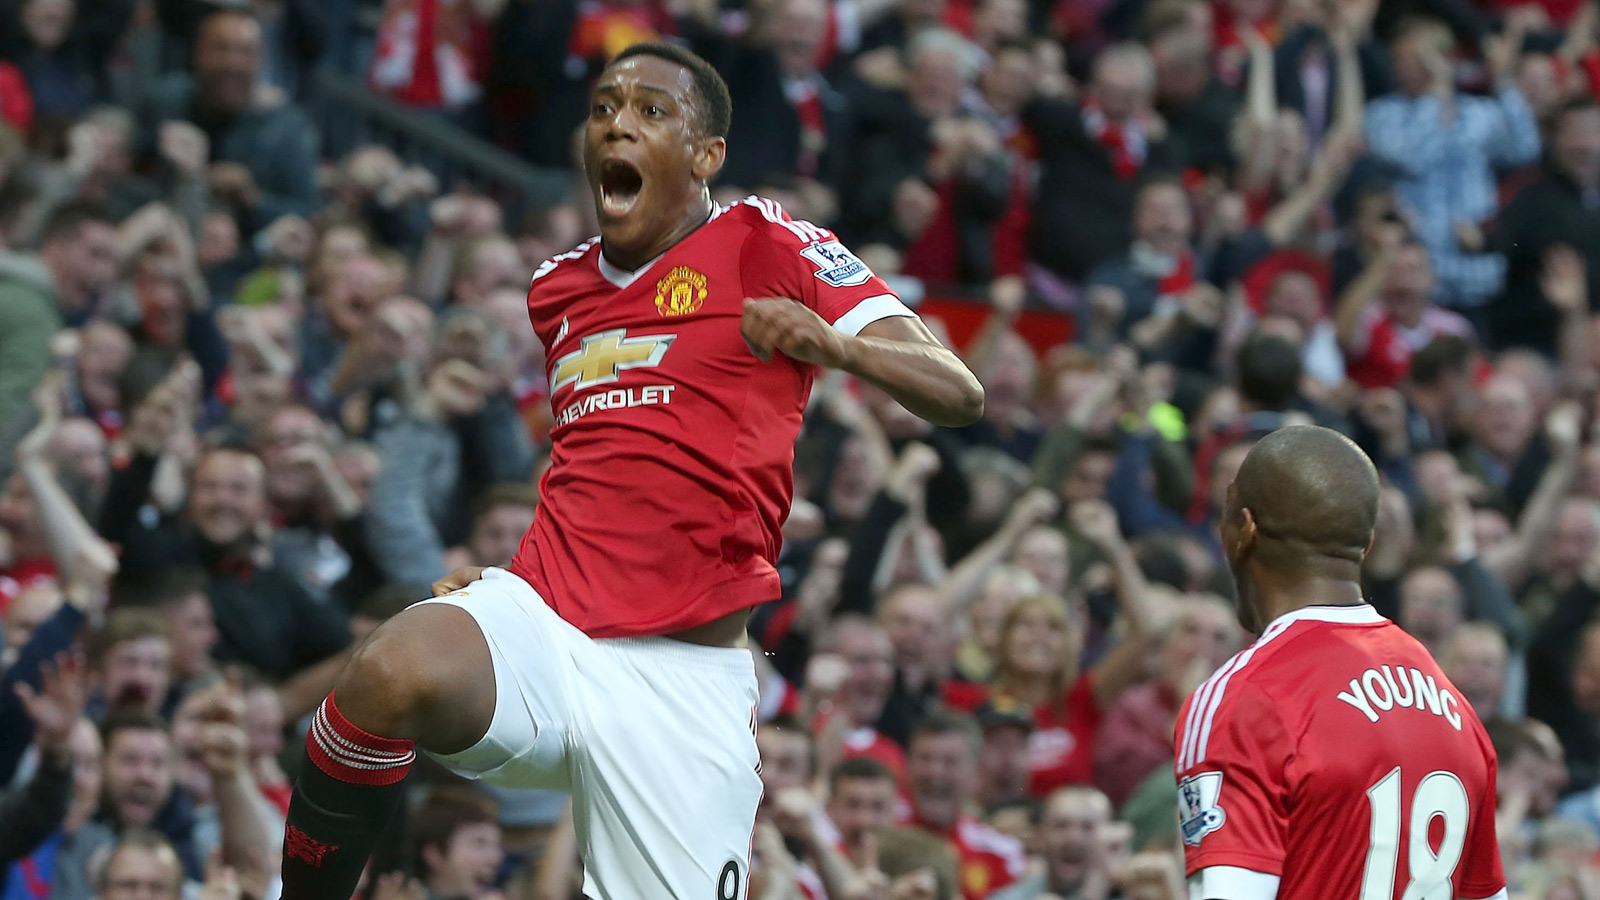 Anthony Martial marks Man United debut with late goal vs. Liverpool